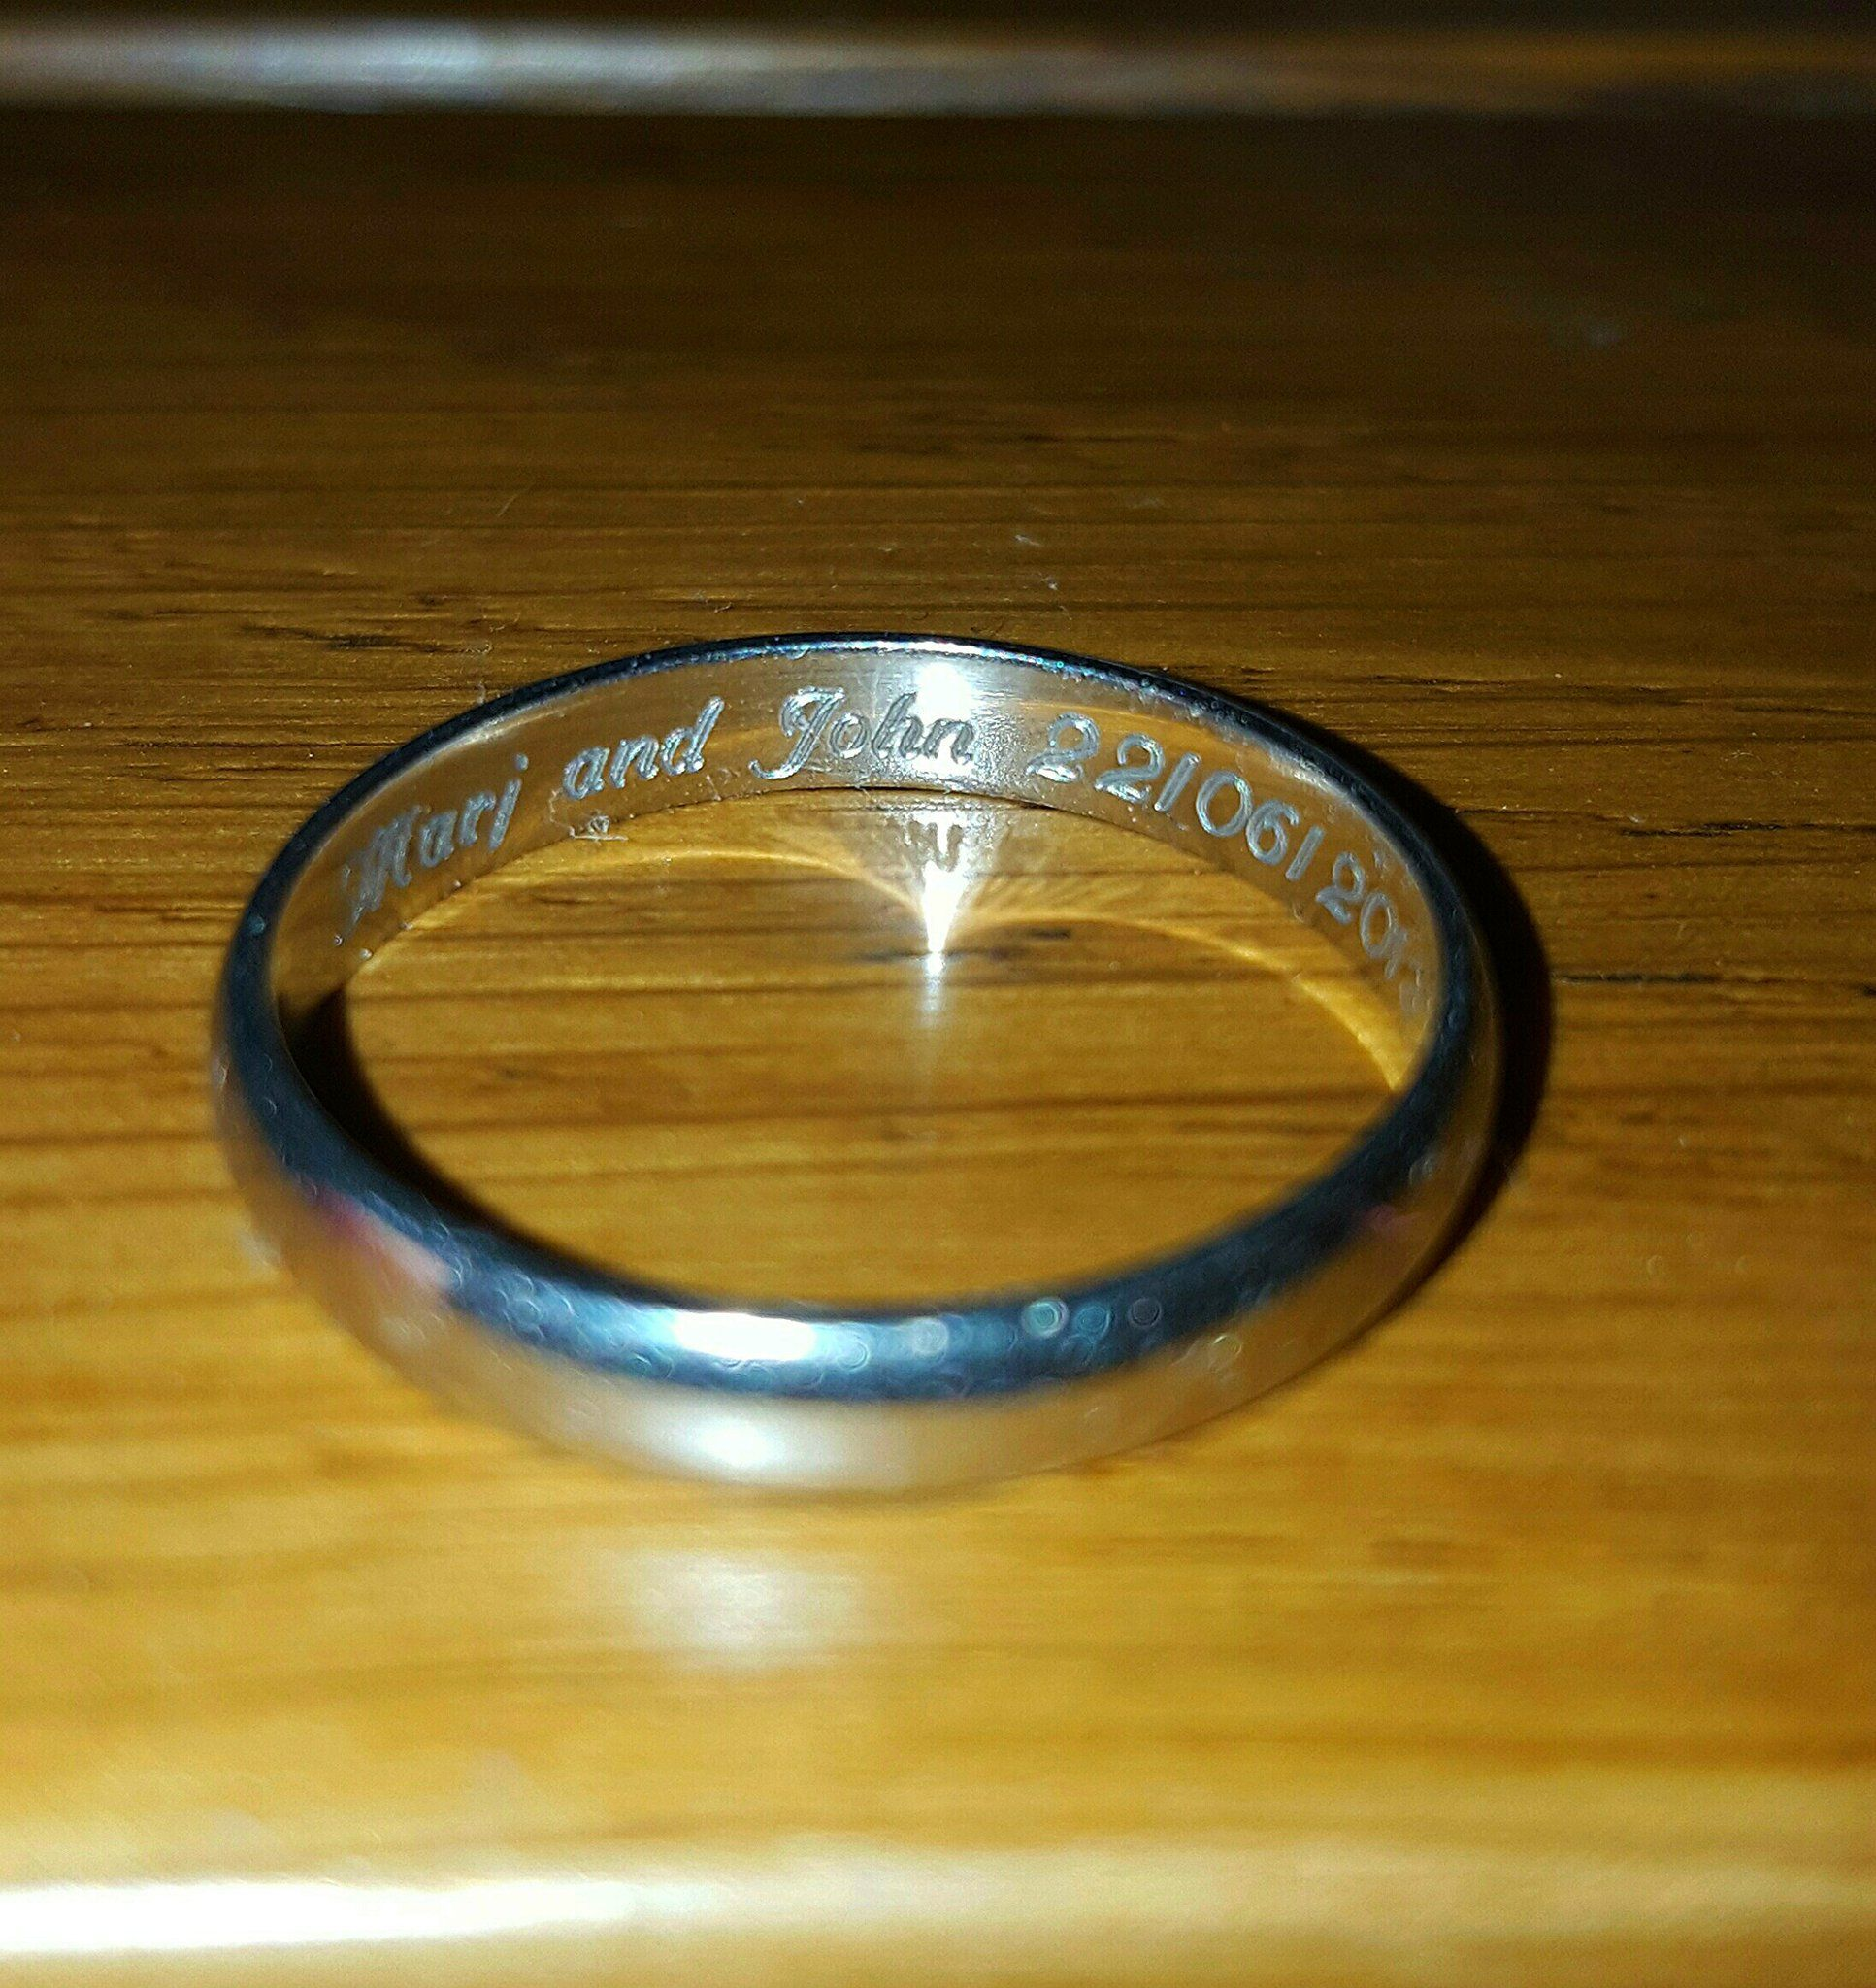 My Husband Lost His Platinum Band Wedding Ring He Likely Lost It At